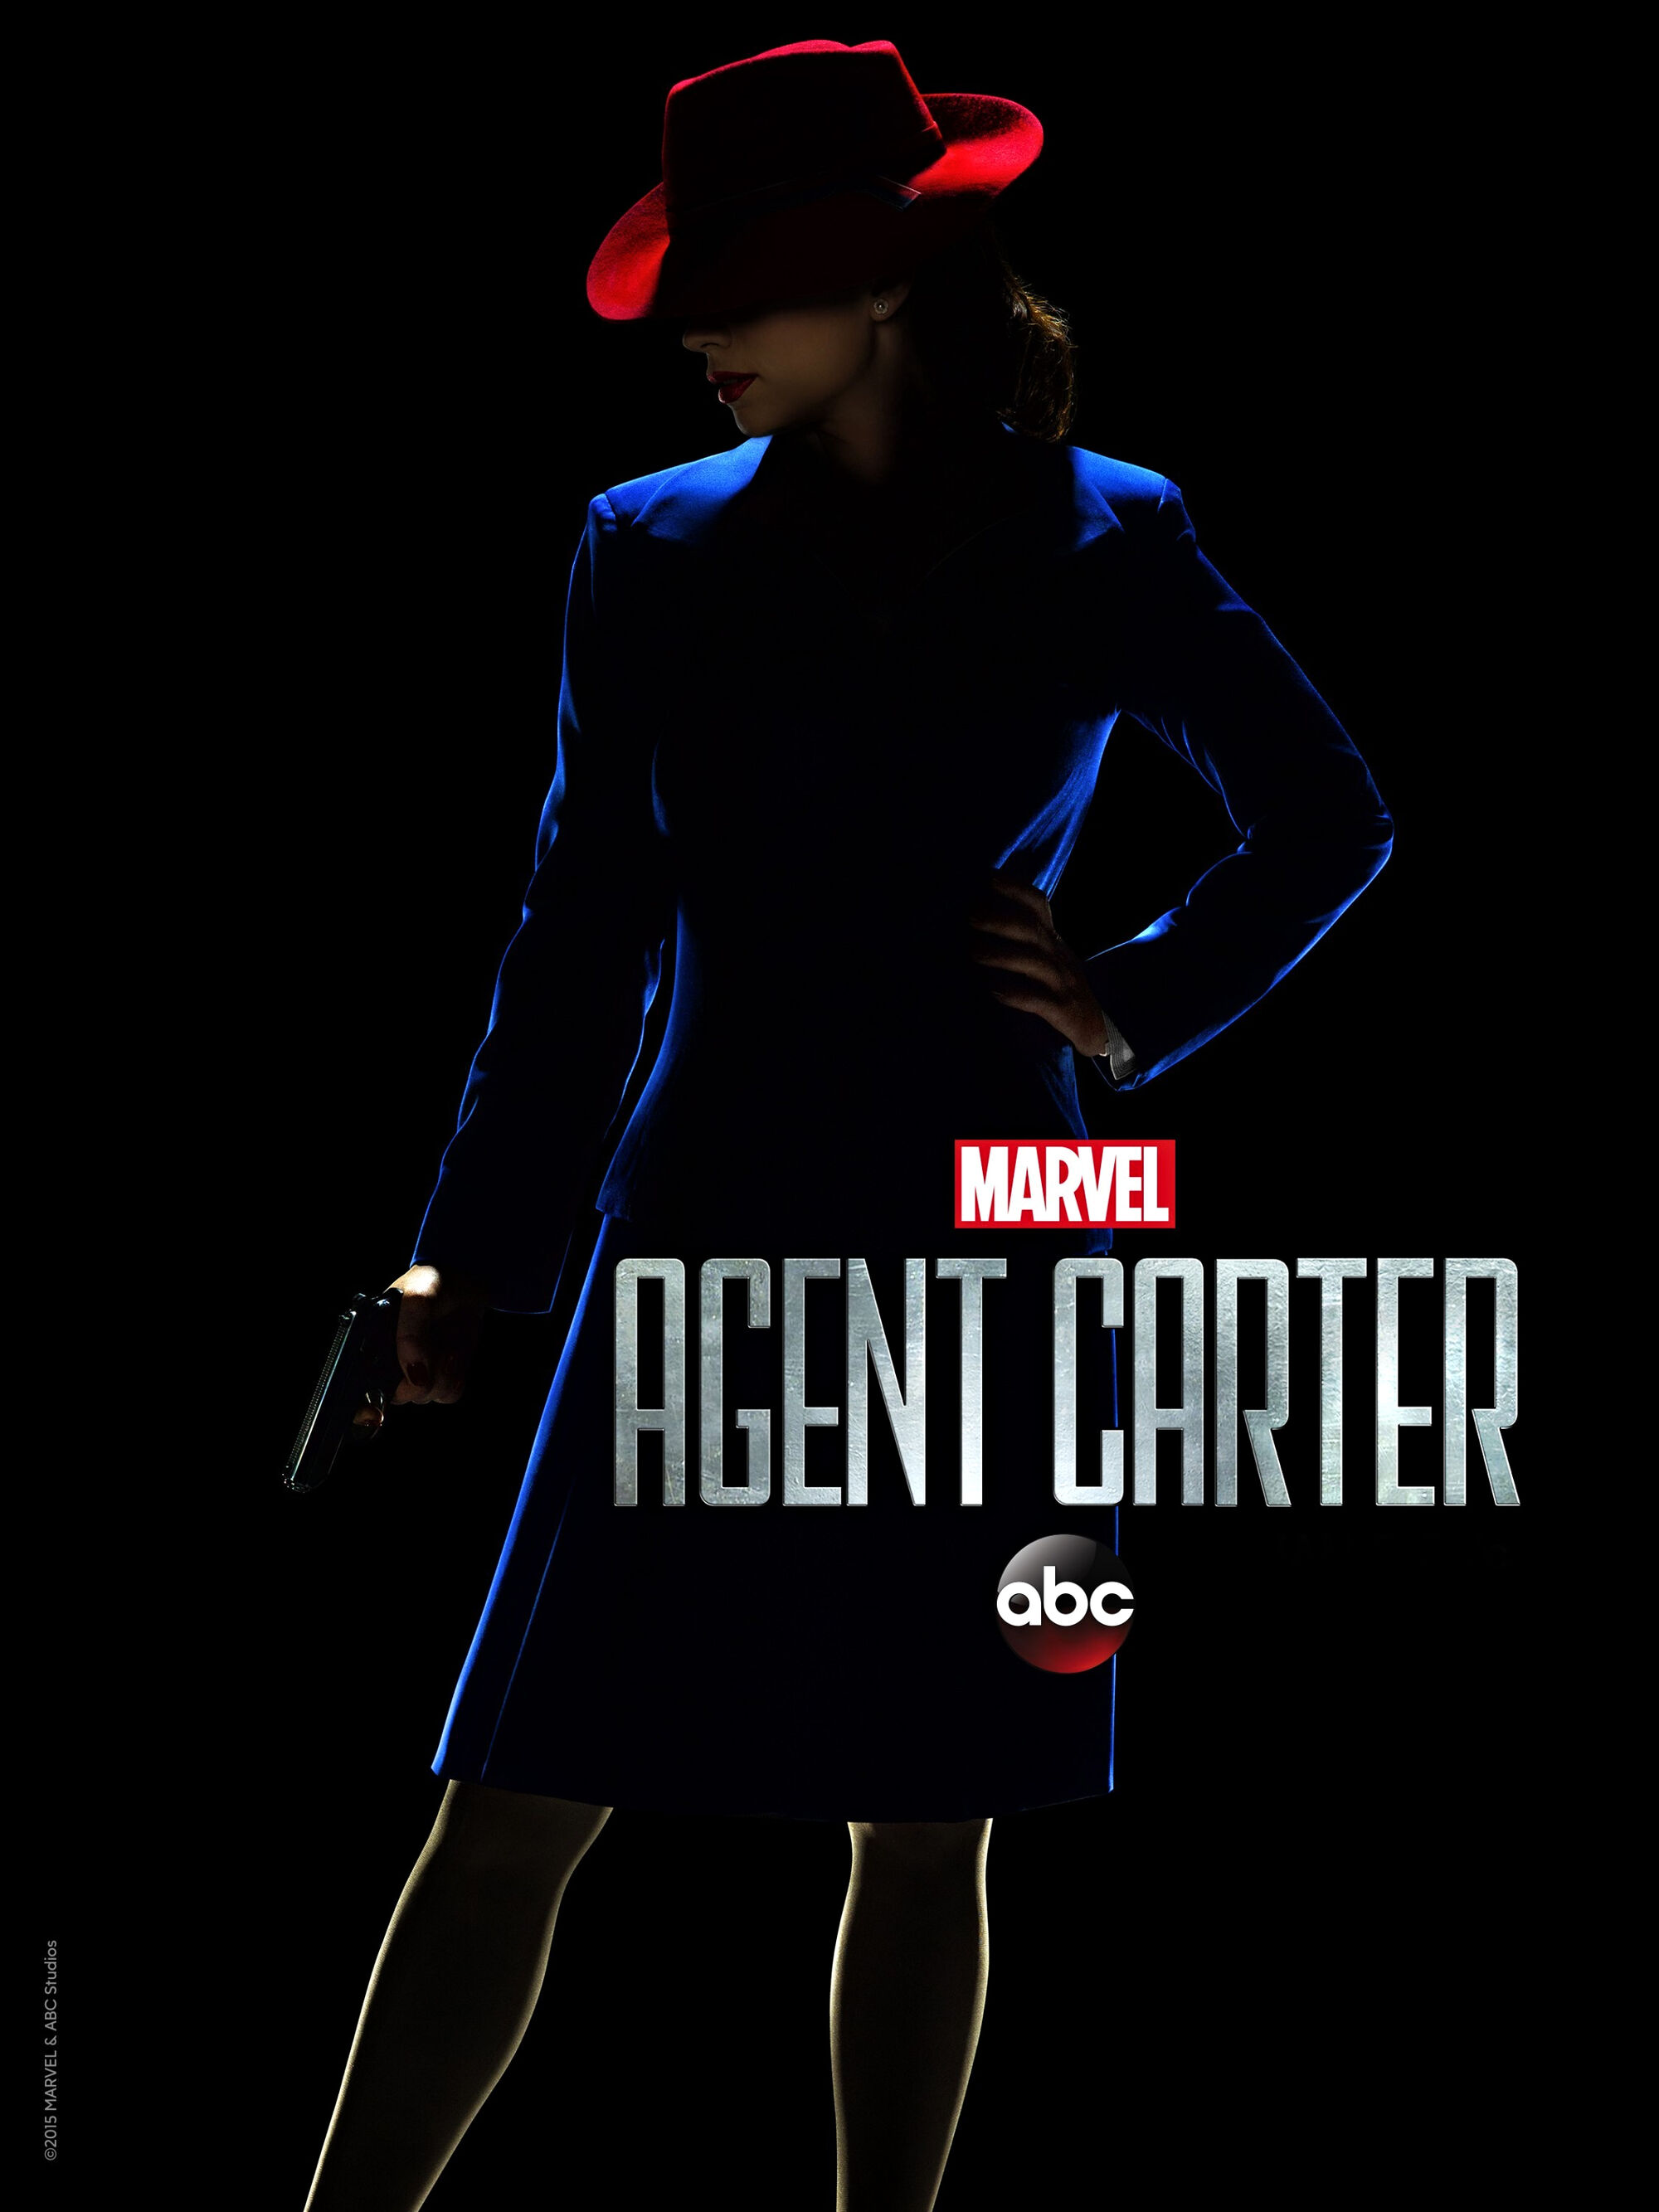 c86acbfc Agent Carter (TV series)/Quote | Marvel Cinematic Universe Wiki | FANDOM  powered by Wikia